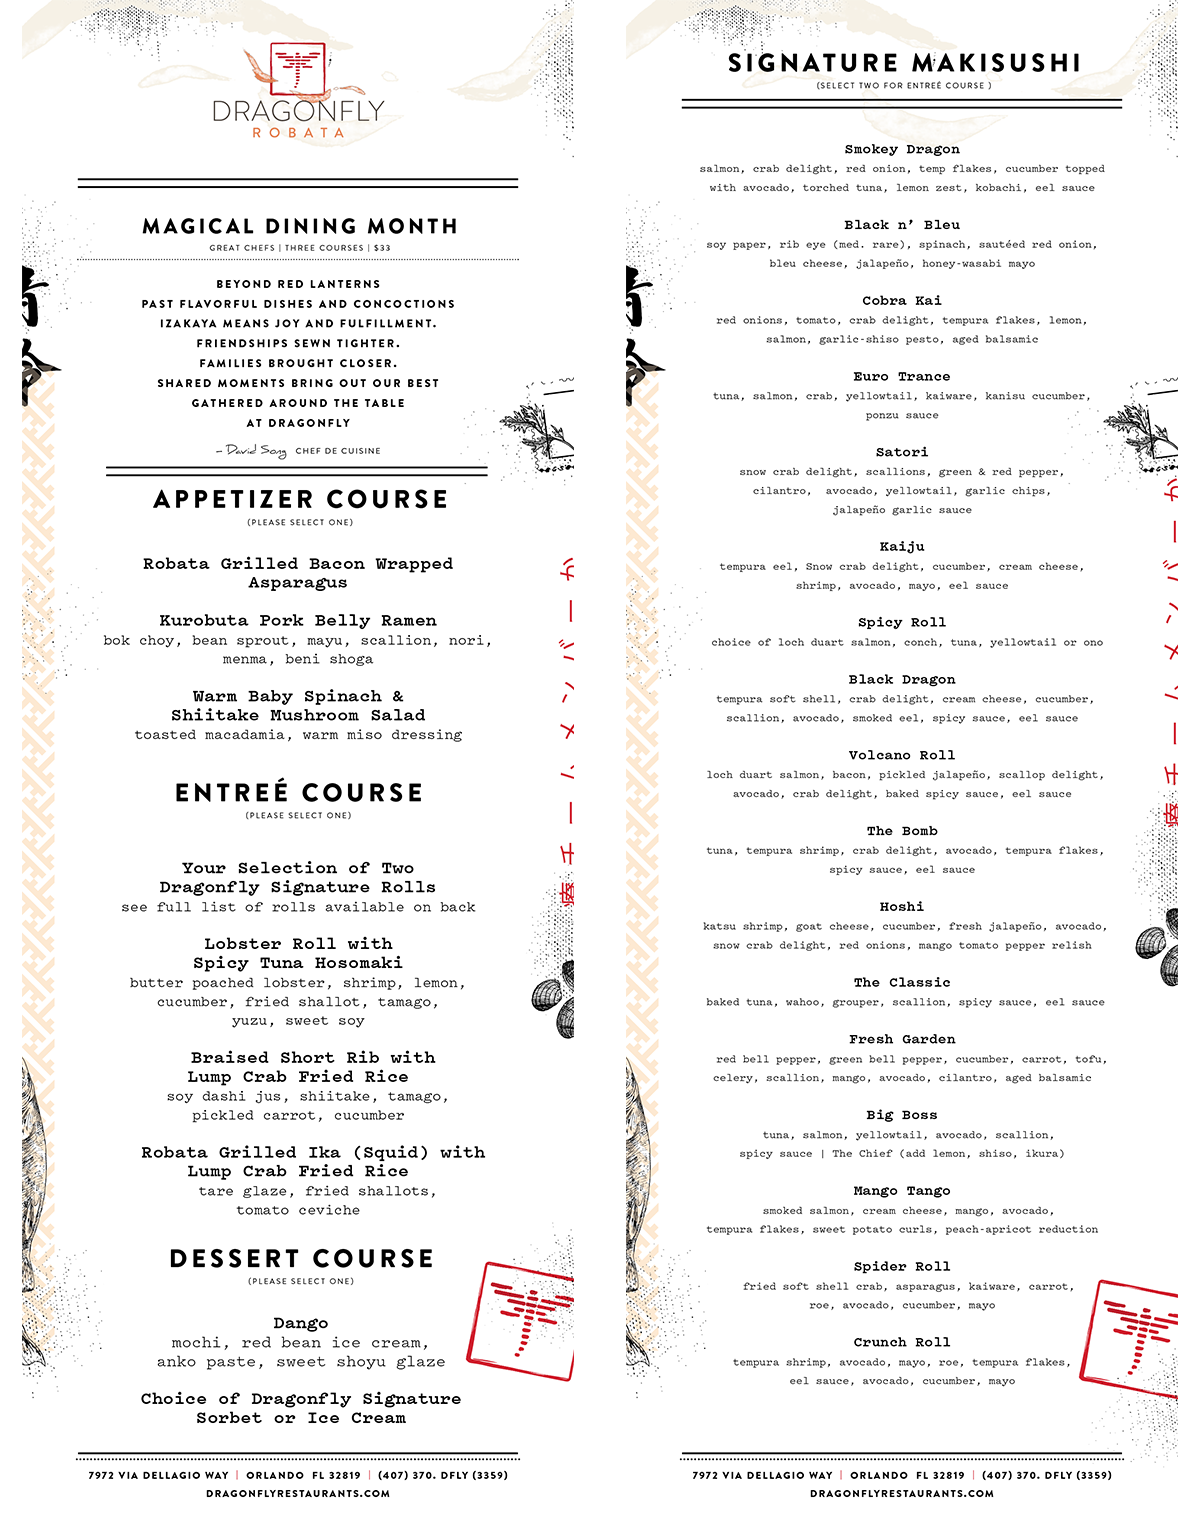 Dragonfly Robata Grill & Sushi Magical Dining Month Menu 2016